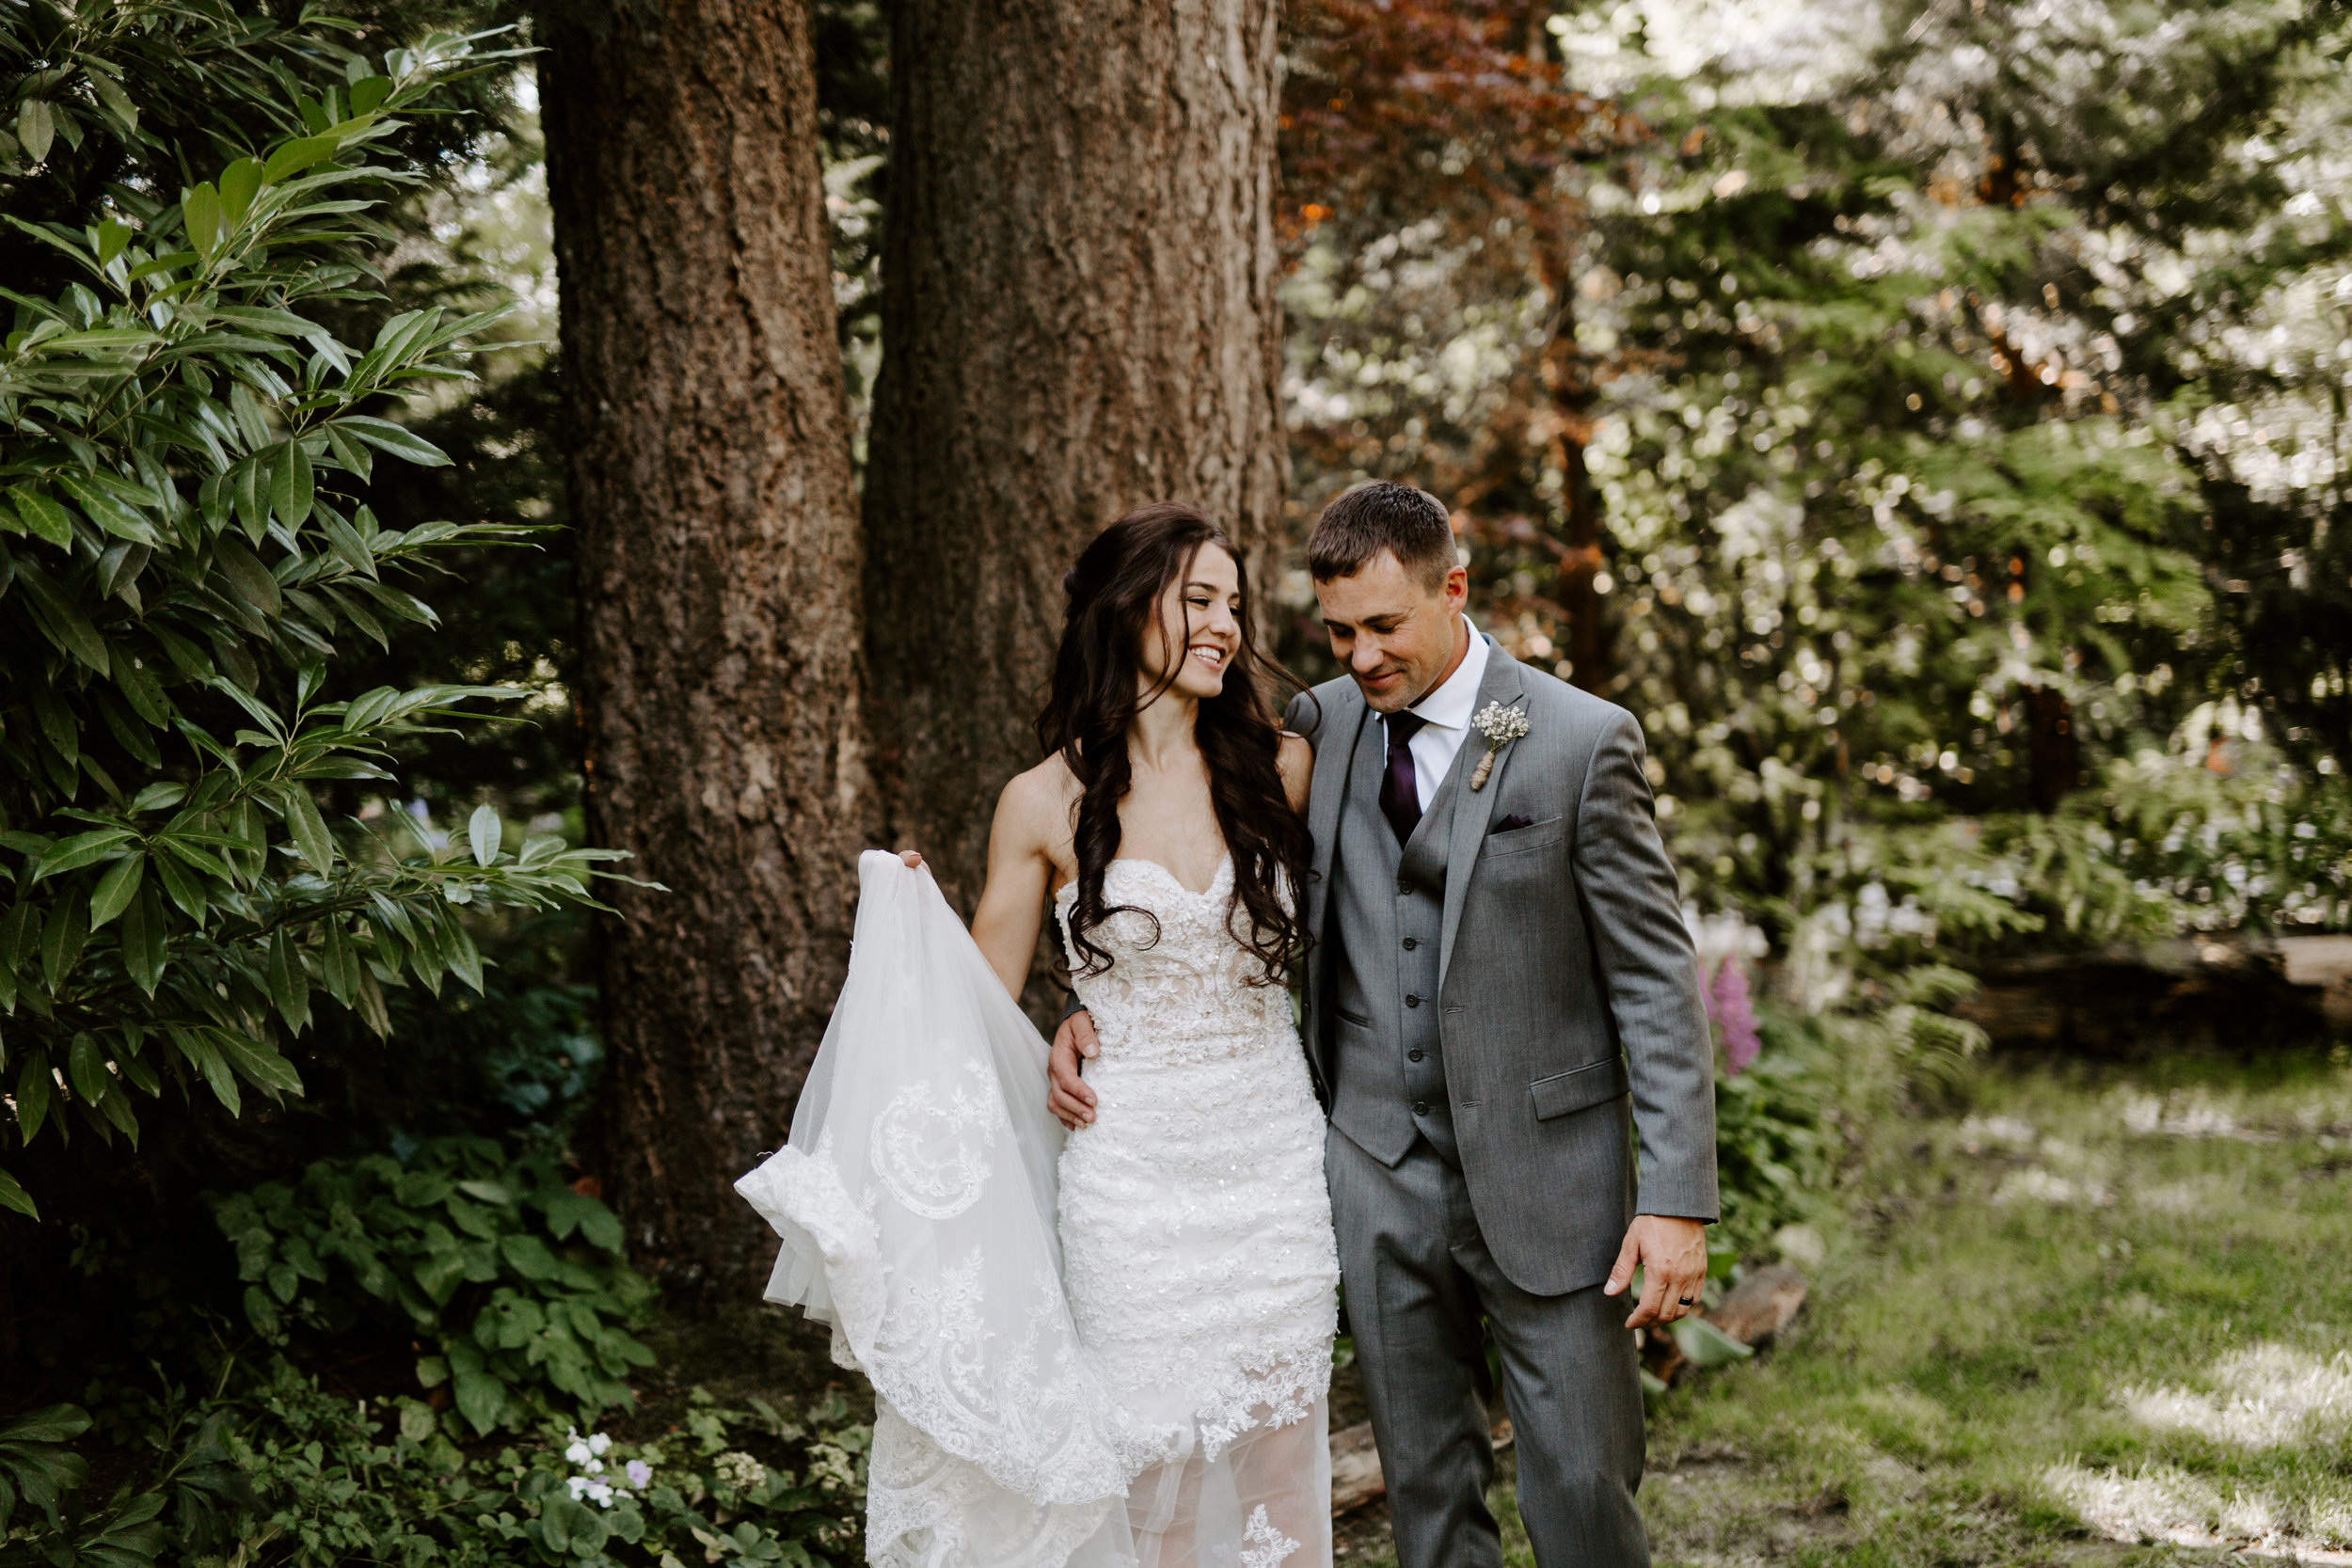 Jackie + Lance - Black Diamond Gardens - Black Diamond Washington- Sneak Peeks! -  Meme Urbane Photography-7.jpg